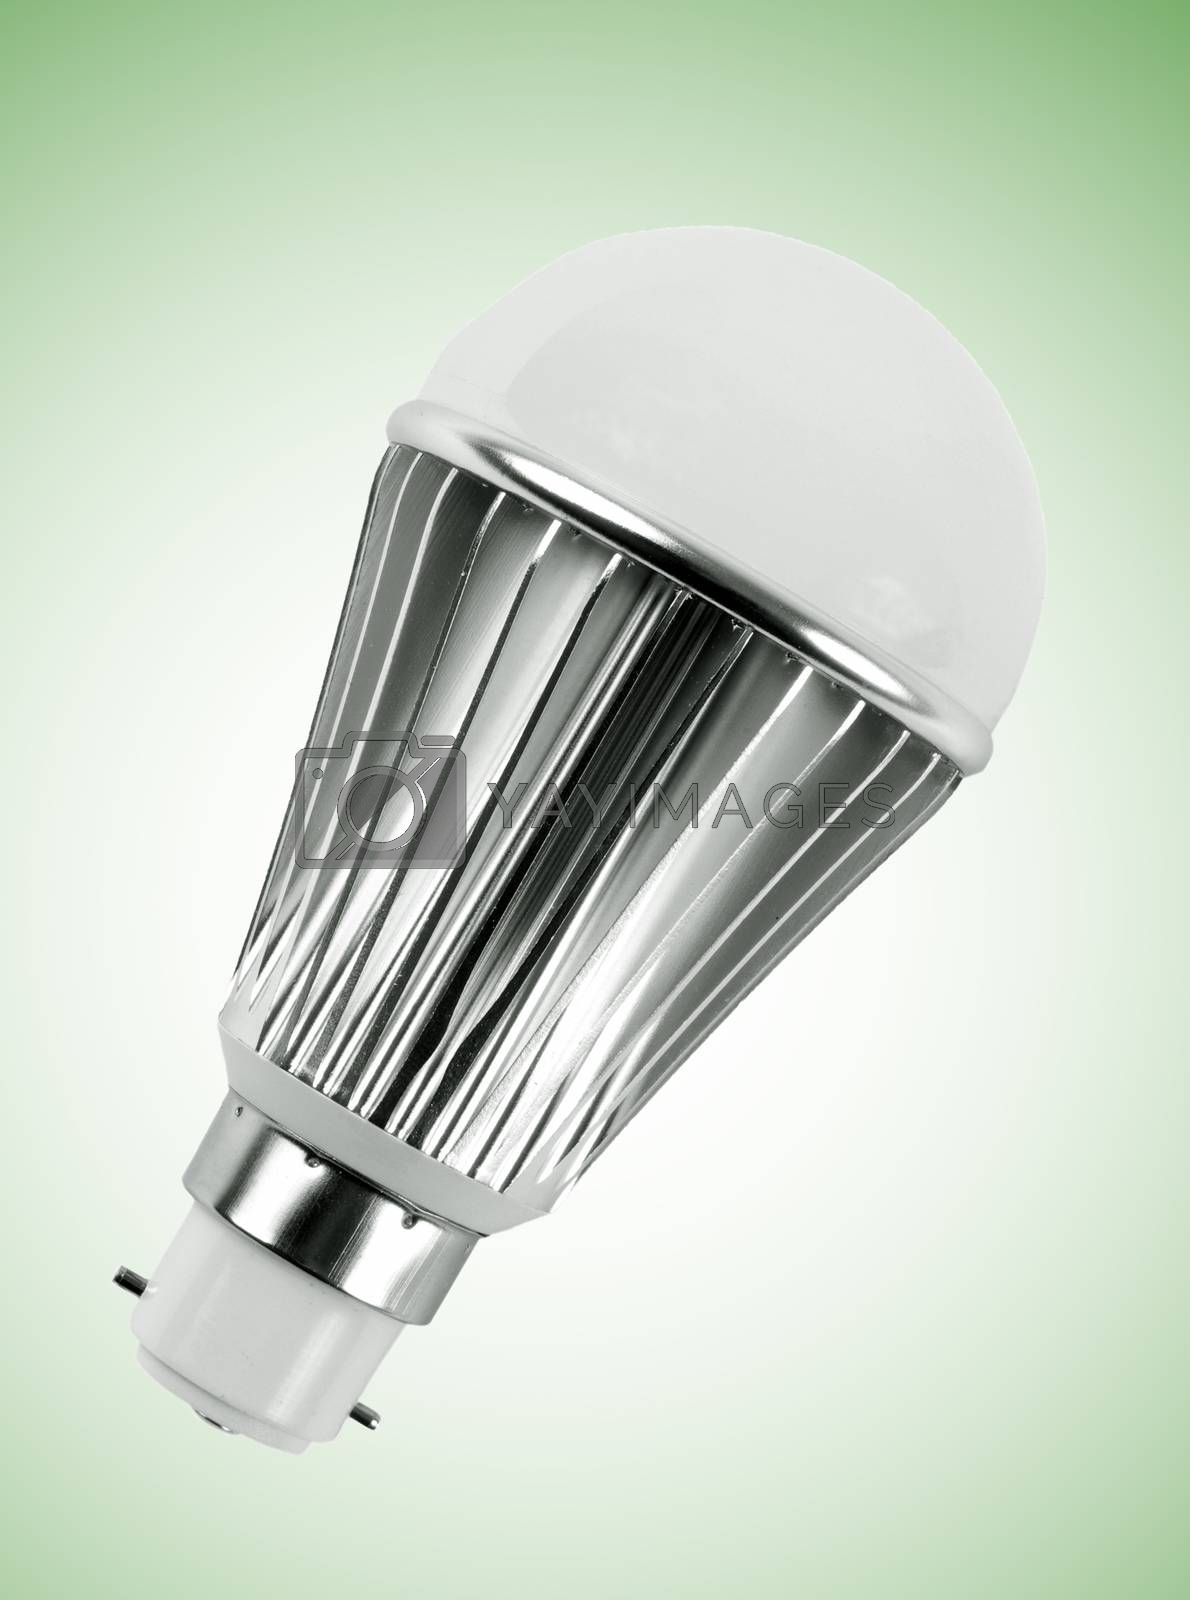 light bulb on the green surface